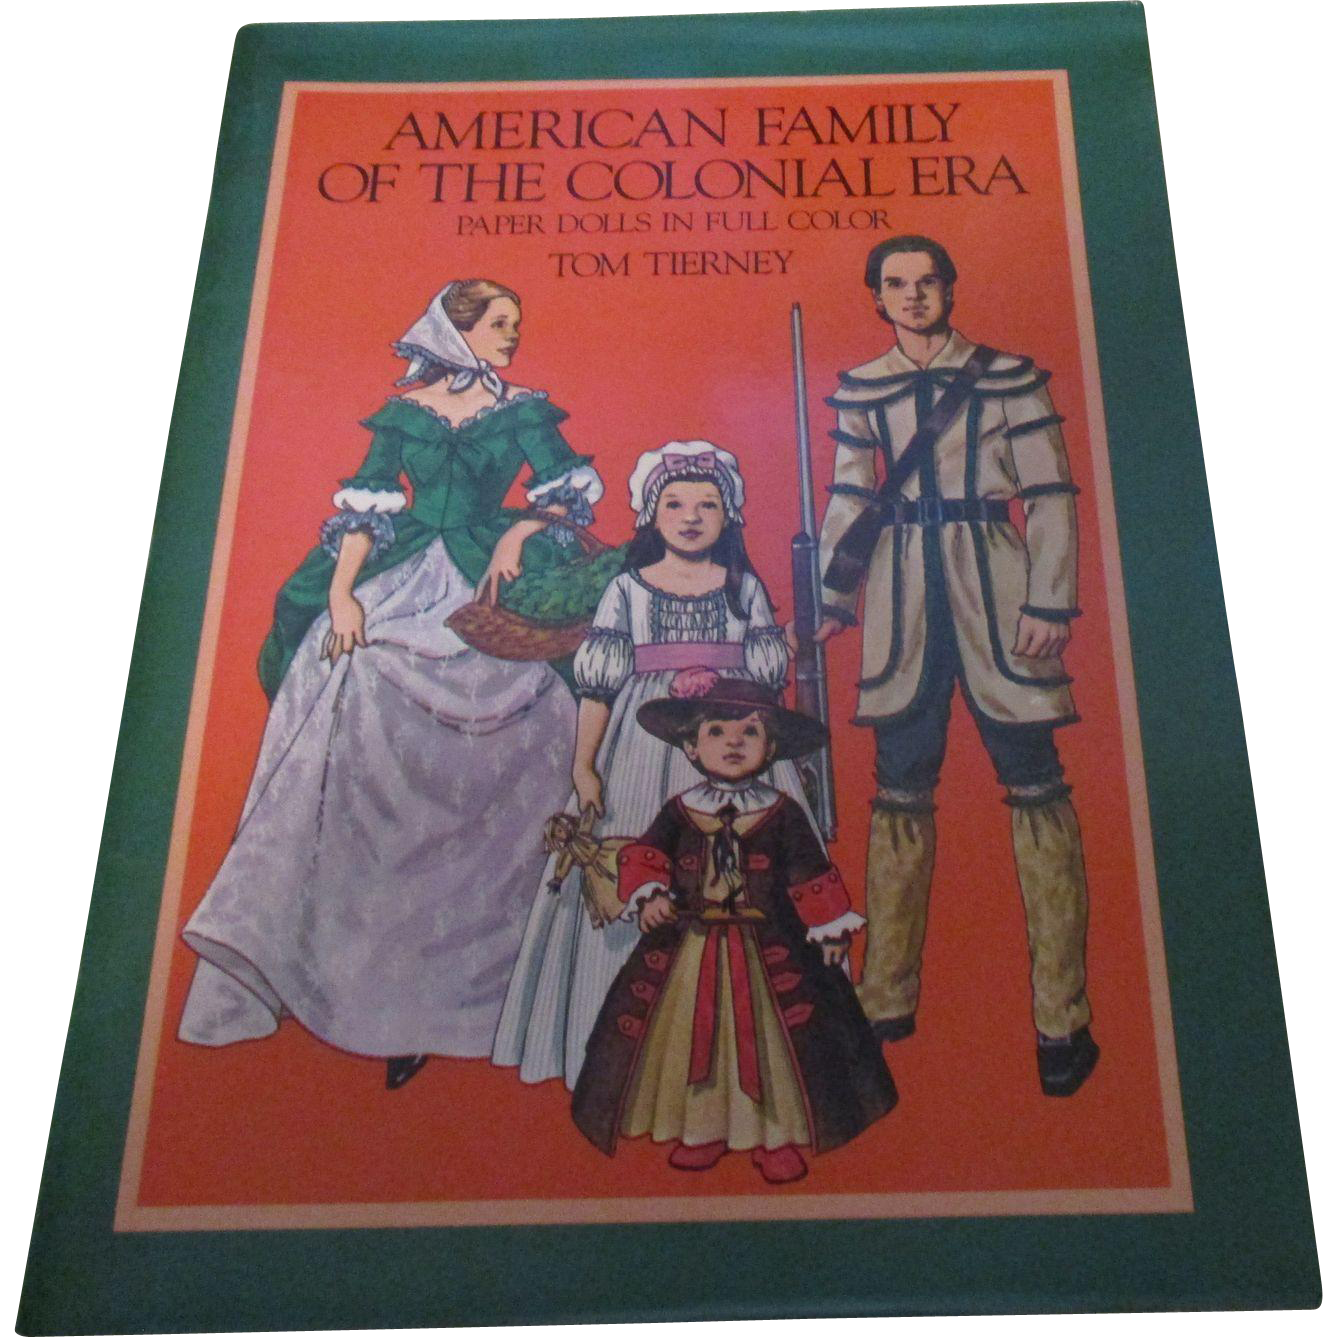 Tom tierney colonial fashions paper dolls - Vintage American Family Of The Colonial Era Paper Dolls Kin Full Color By Tom Tierney